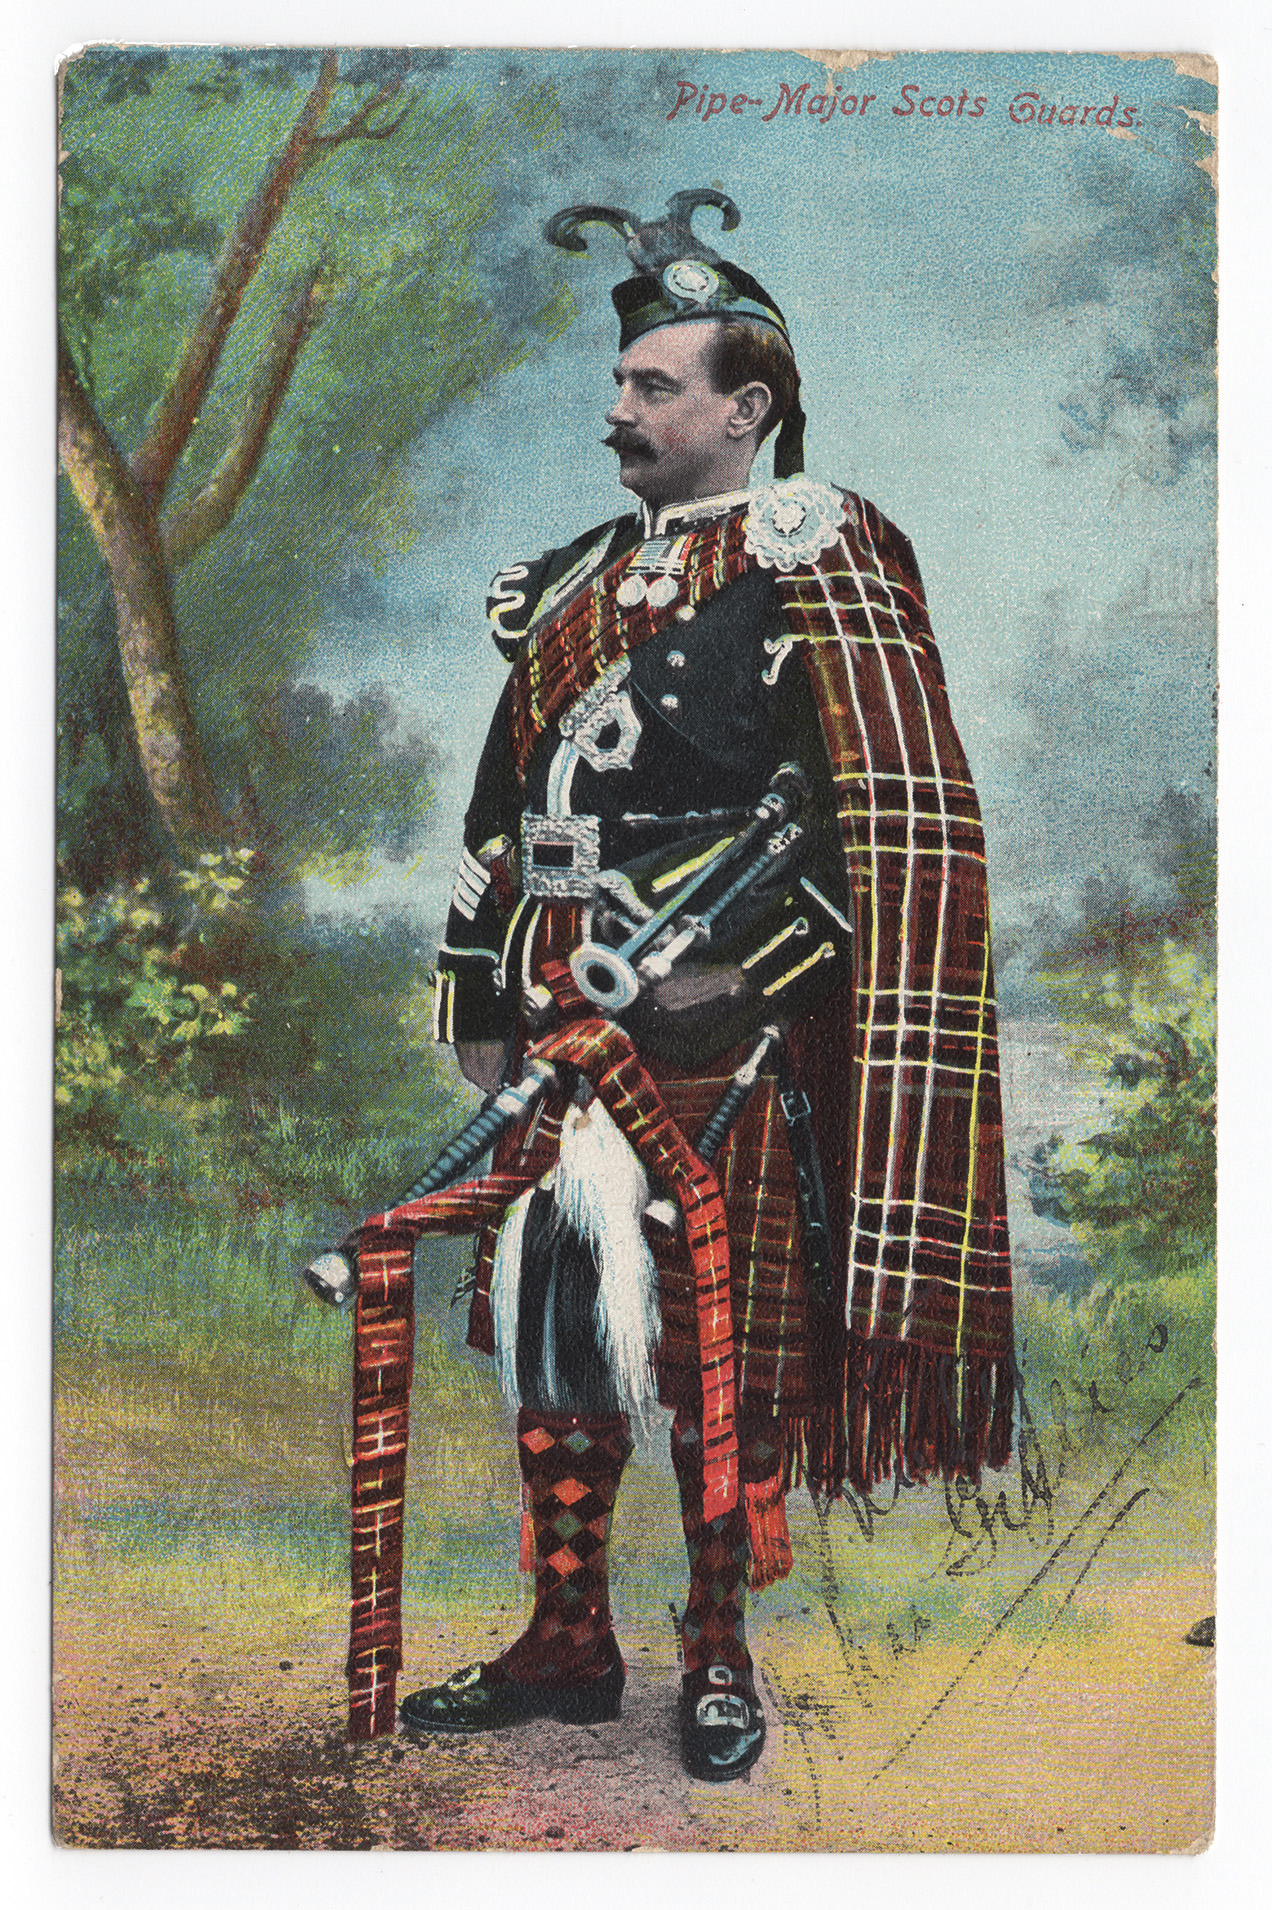 Postcard circa 1907-1910, signed by Gillies, after he became pipe-major of the 1st Battalion Scots Guard.